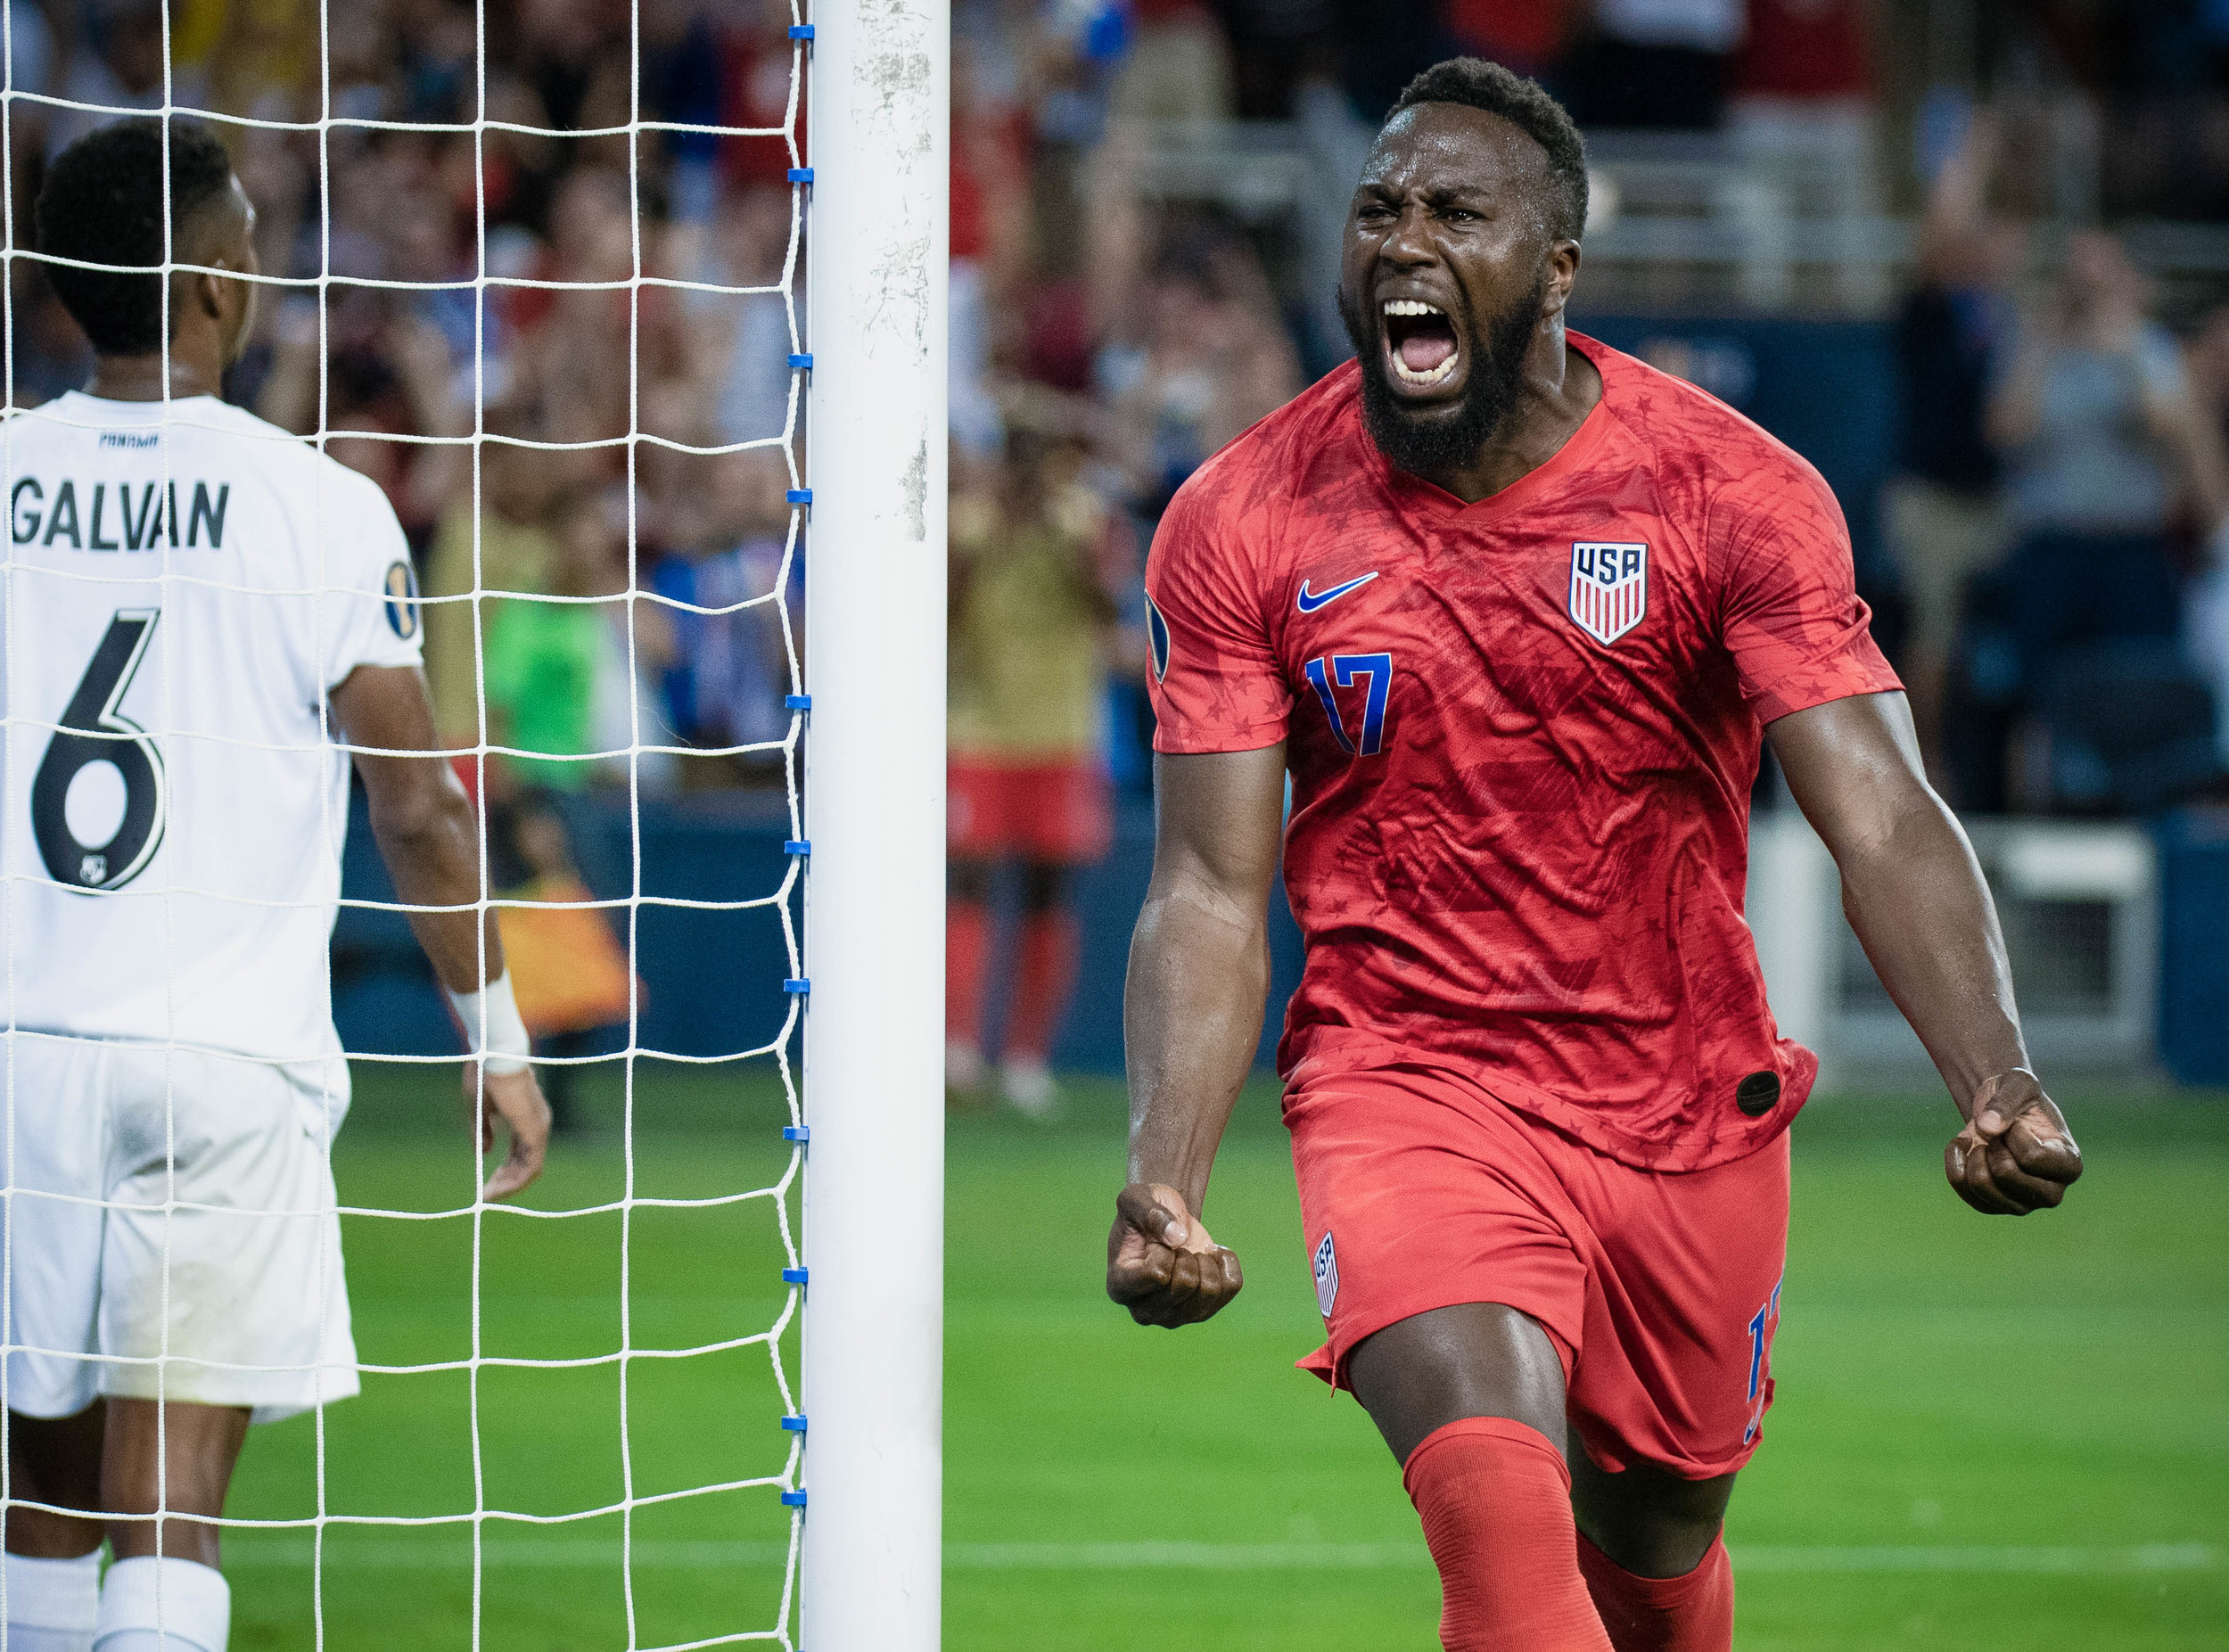 Jozy Altidore (17) celebrates during the United States vs. Panama, Gold Cup match on Wednesday, June 26, 2019 at Children's Mercy Park in Kansas City, Kansas. The U.S. defeated Panama 1-0 with a bicycle kick goal scored by Jozy Altidore in the 66th' minute.